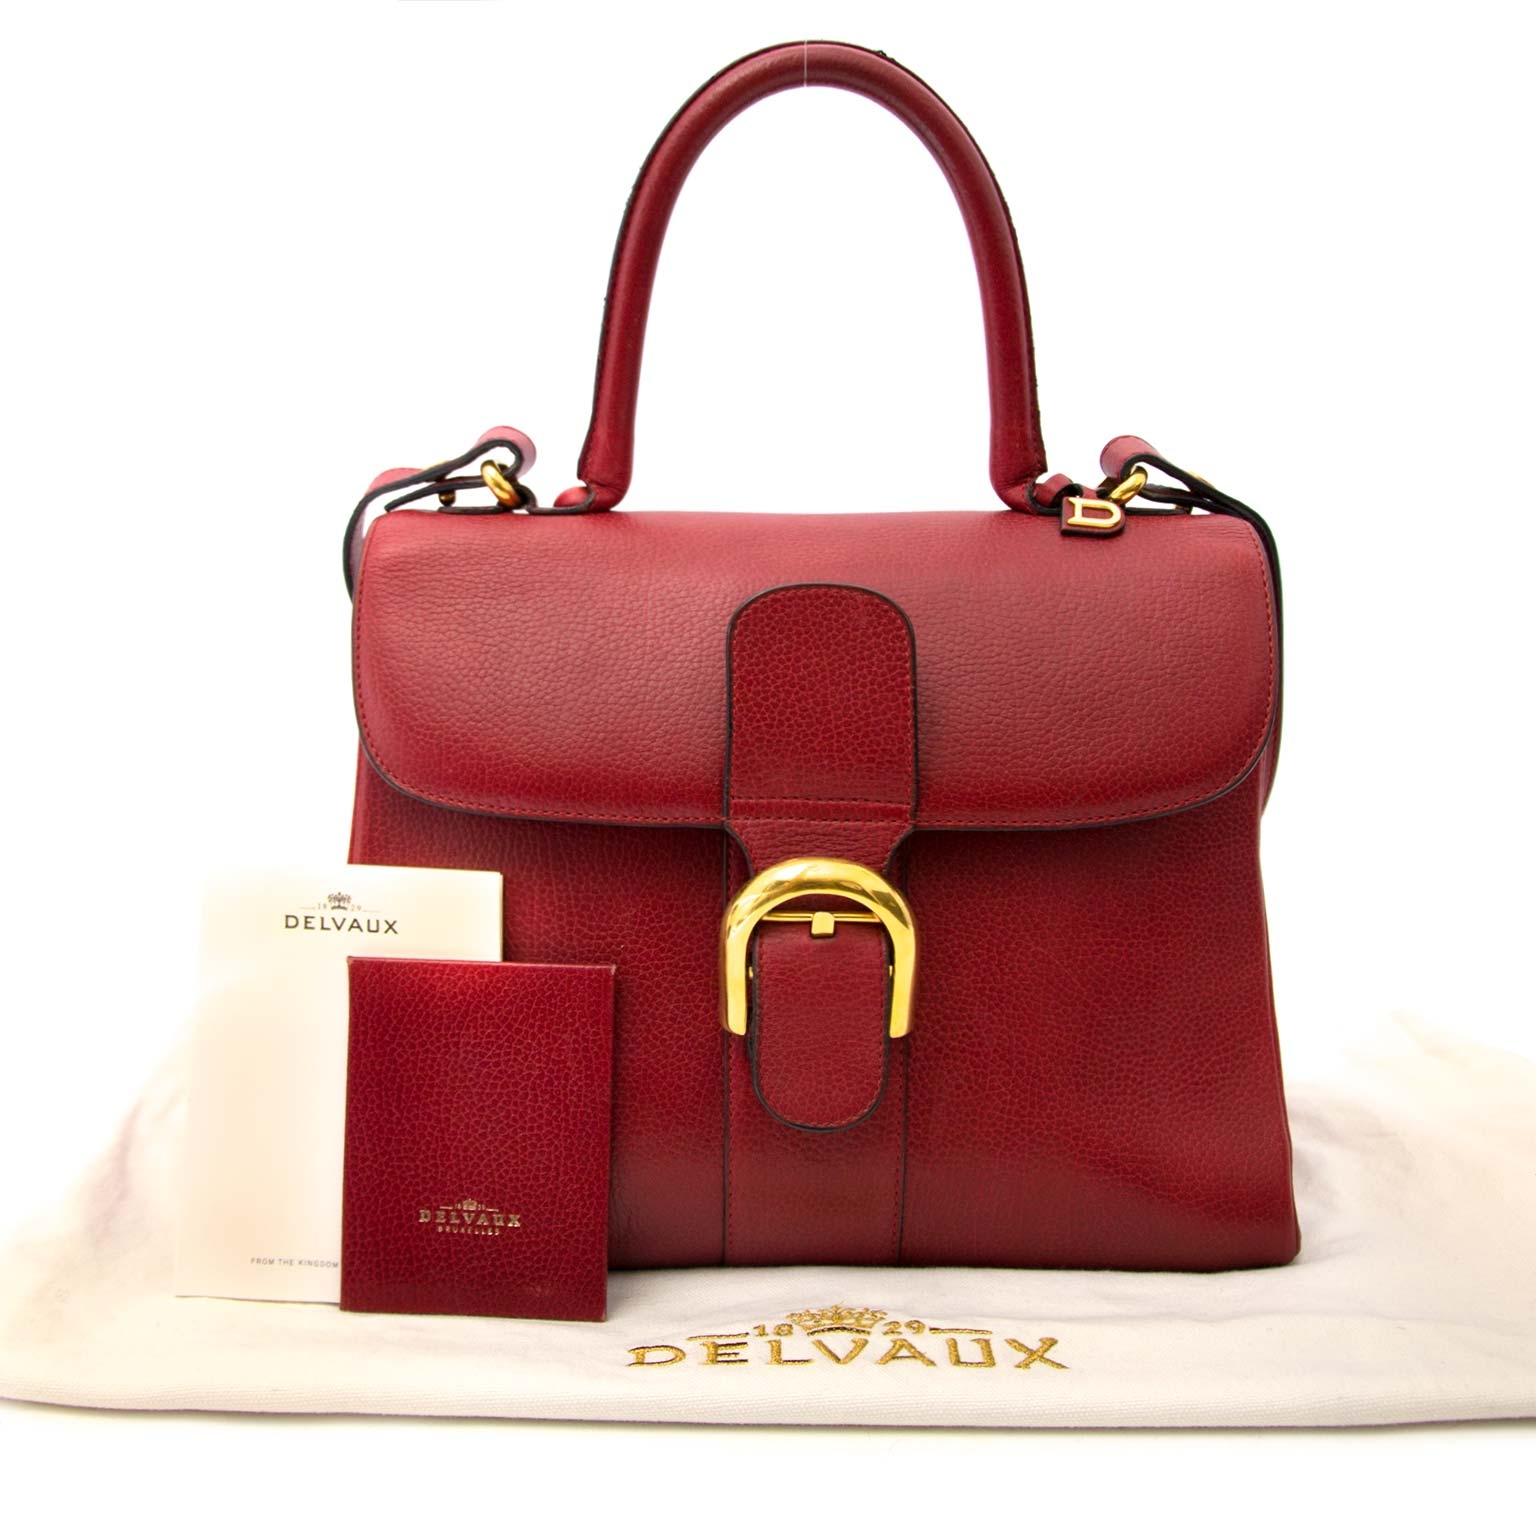 worldwide shipping Delvaux Red Brillant MM + Strap